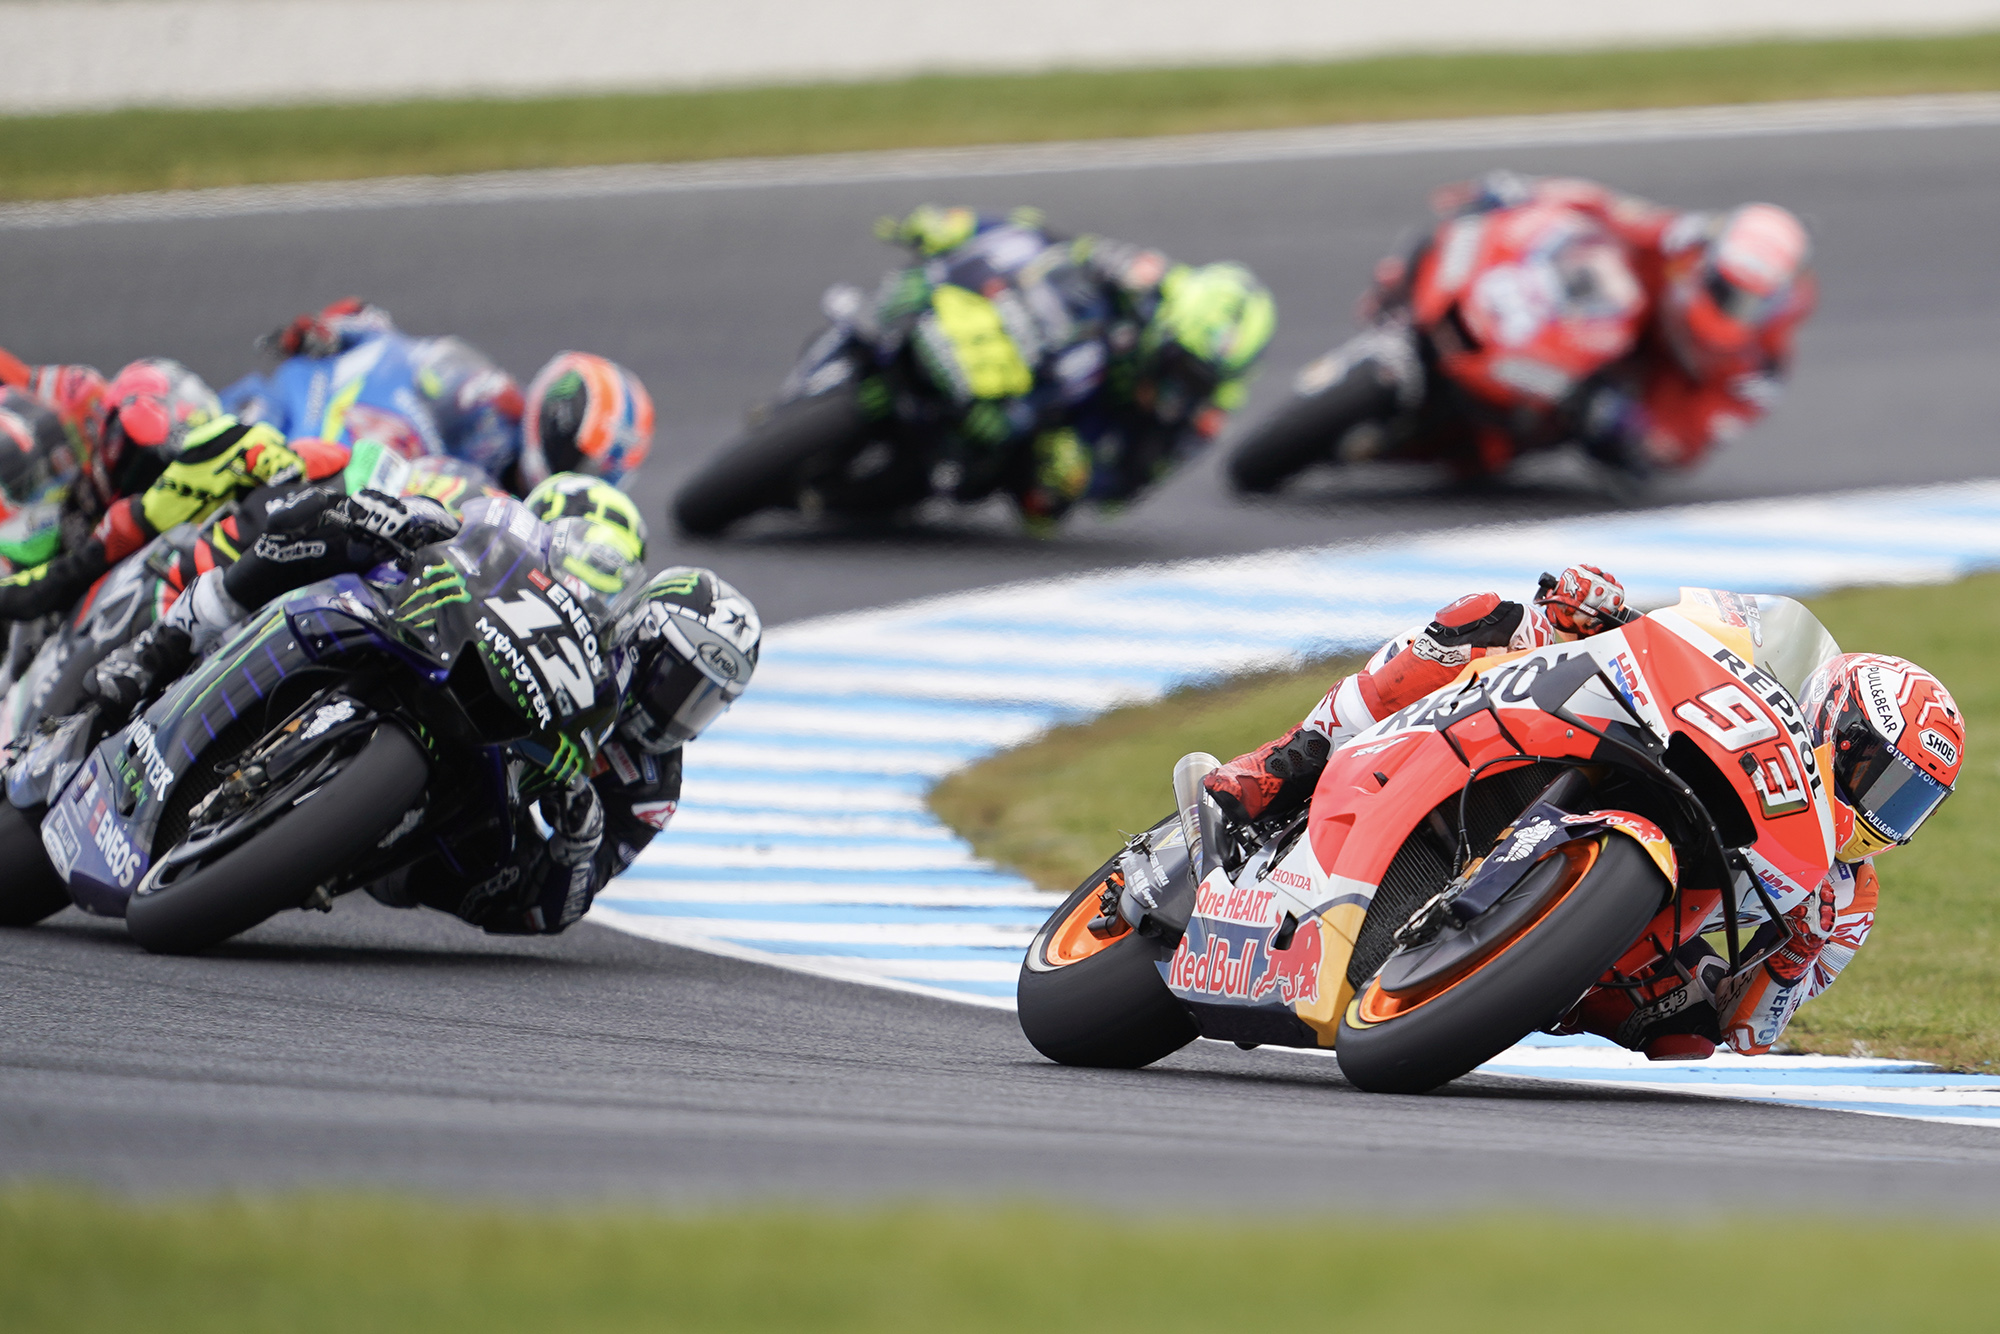 Marc Marquez and Maverick Vinales at Phillip Island in 2019